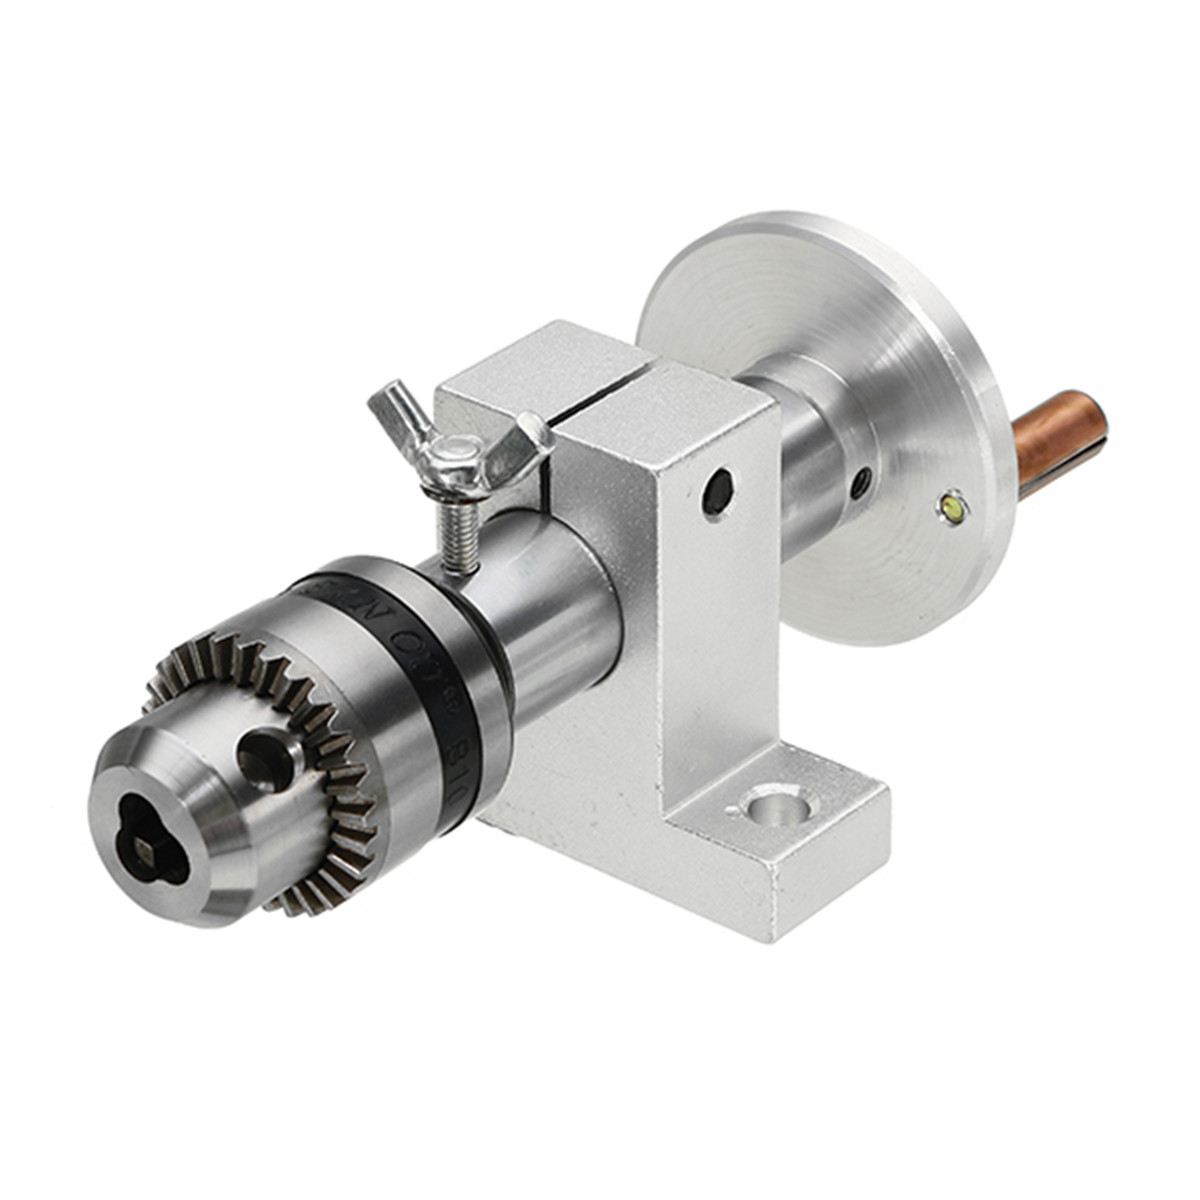 us $20.06 52% off|live lathe center head with chuck diy accessories for  mini lathe machine revolving centre woodworking tool-in lathe from tools on